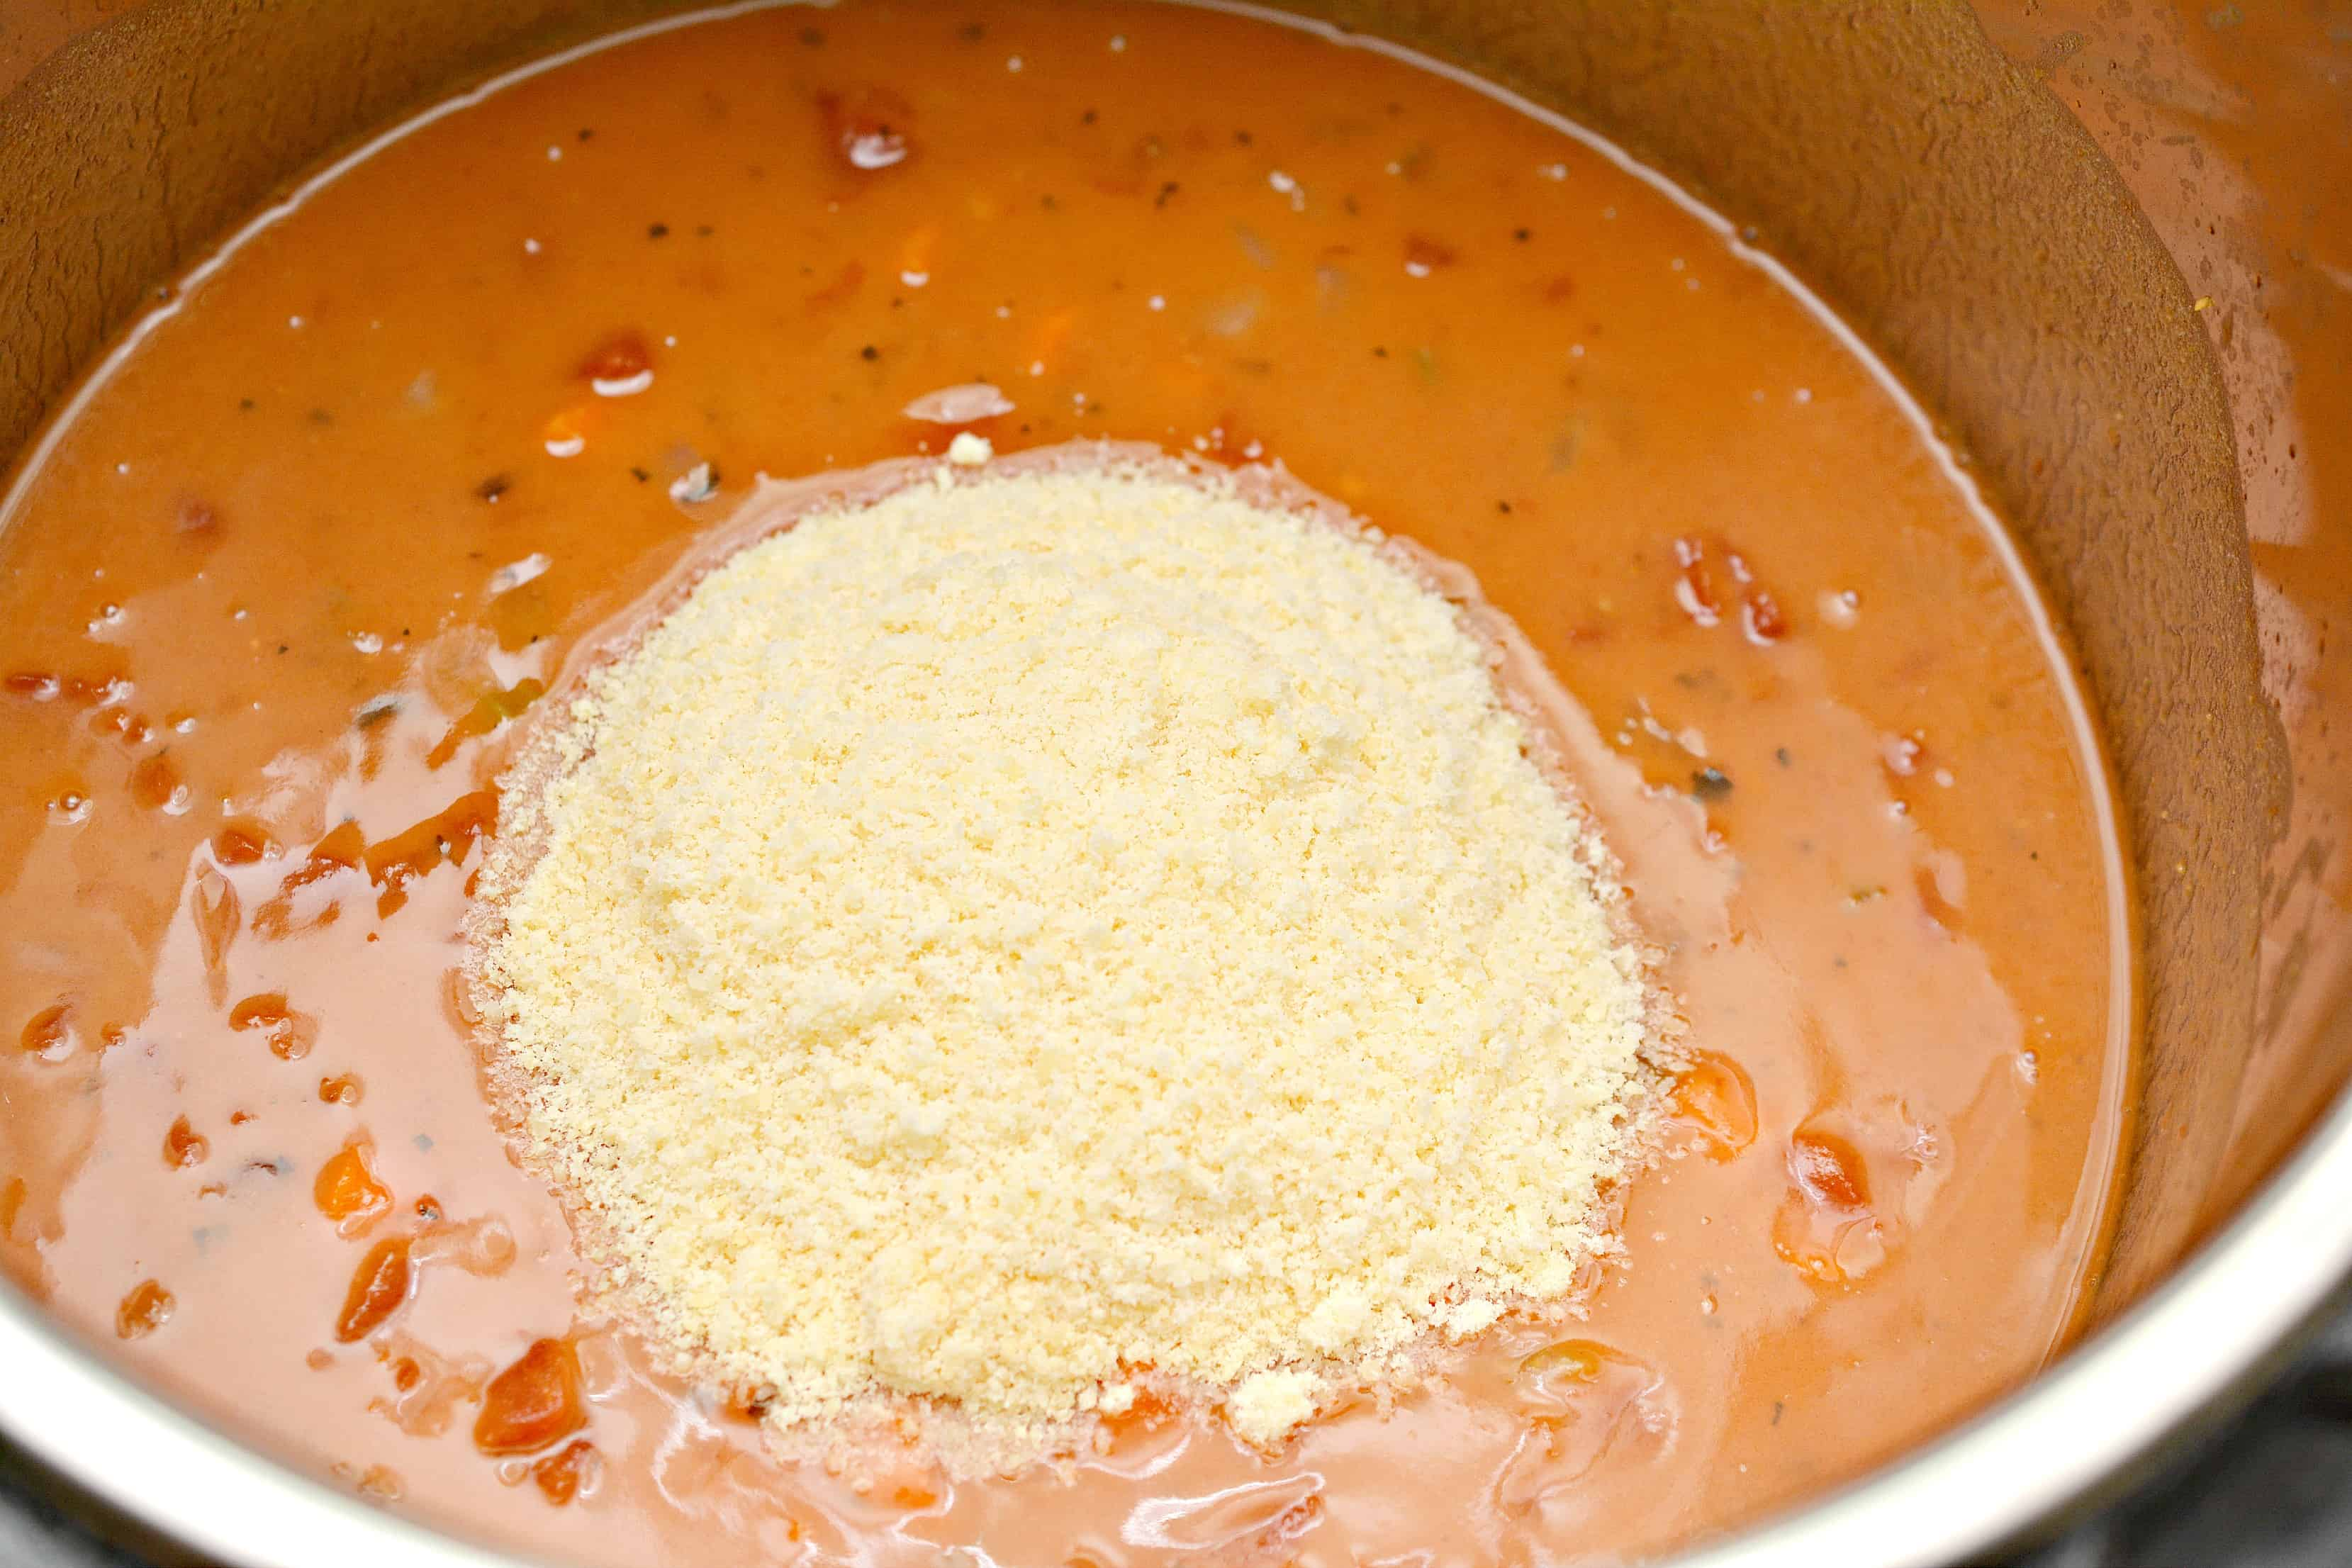 parm cheese in tomato soup